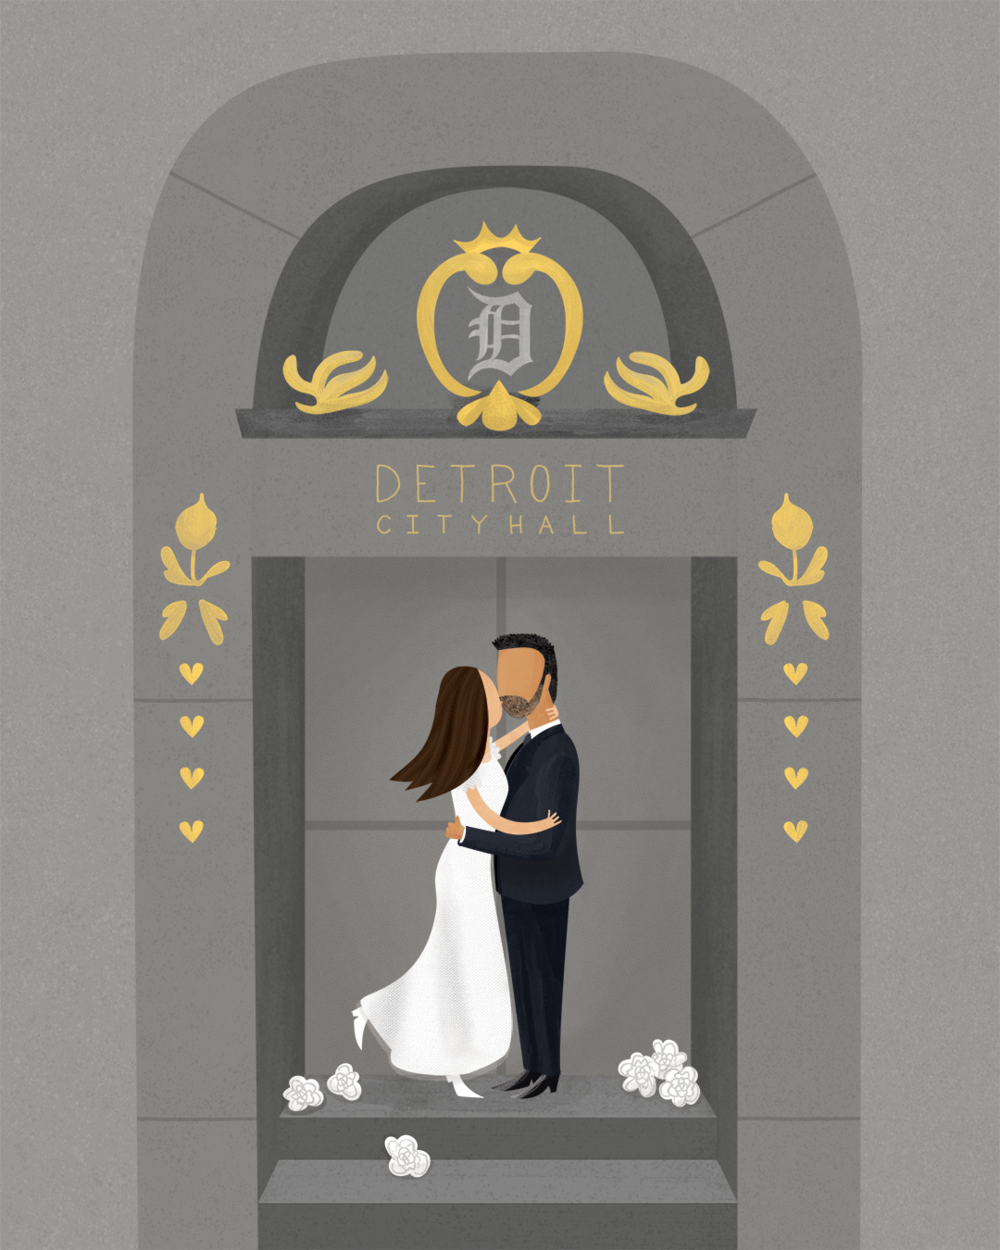 natalie-marion-wedding-portrait-city-hall-kiss-illustration.png